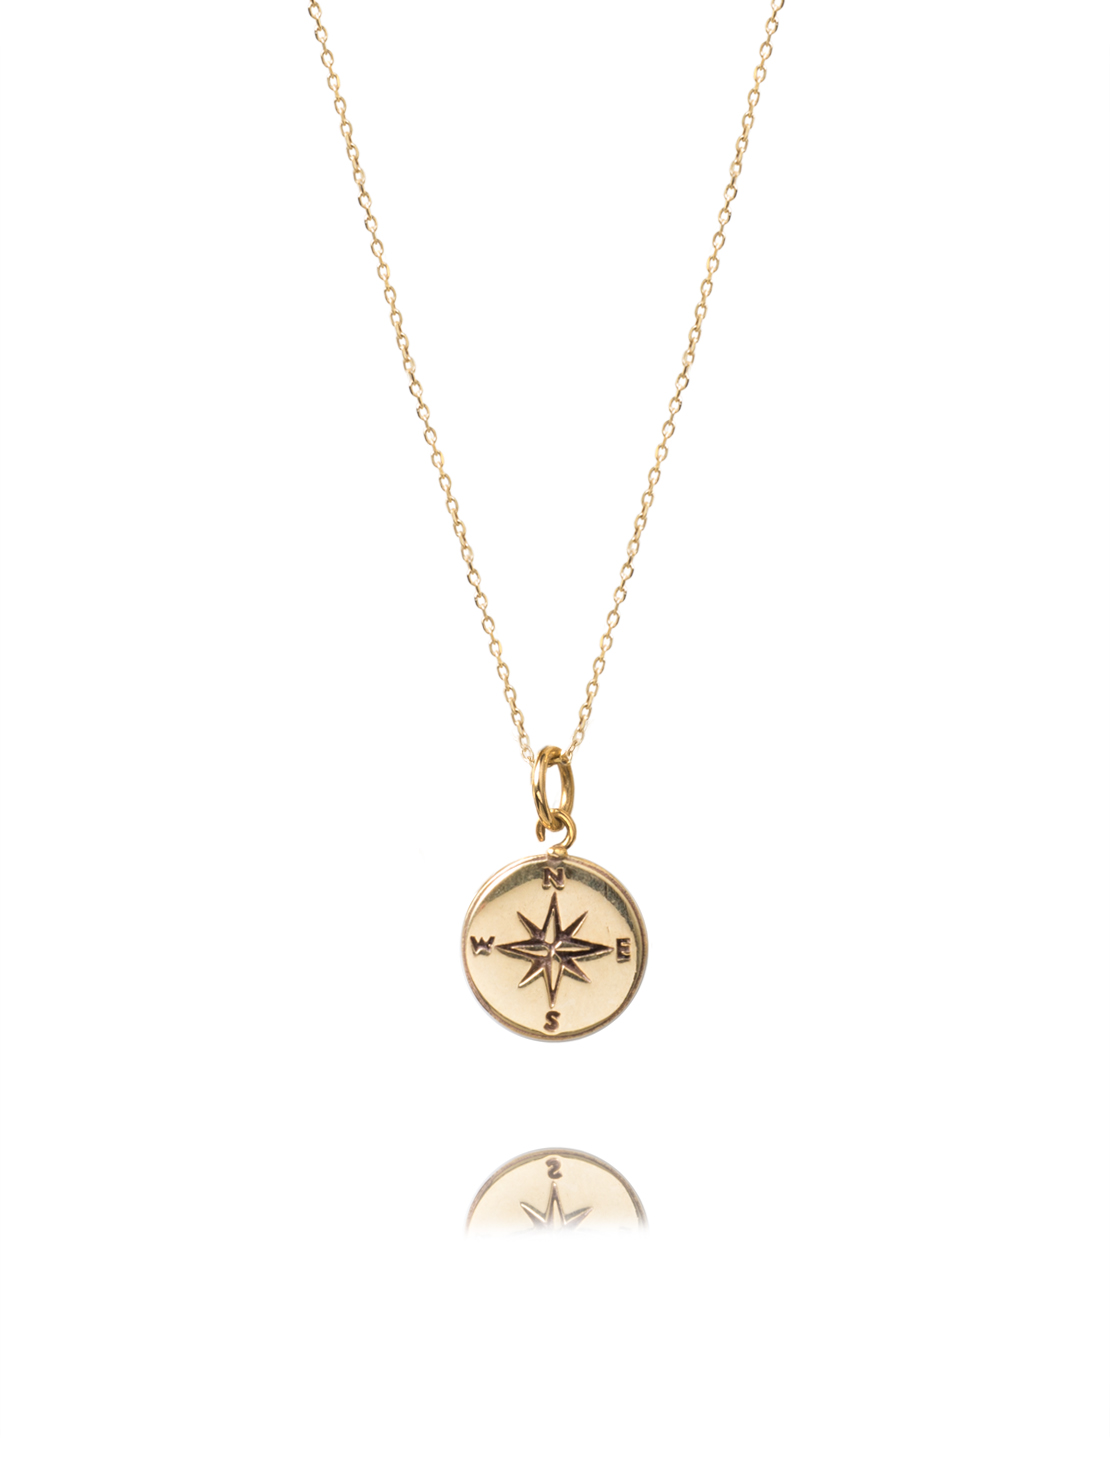 graduation journey jewelry gold listing fullxfull school gift il compass necklace high personalized